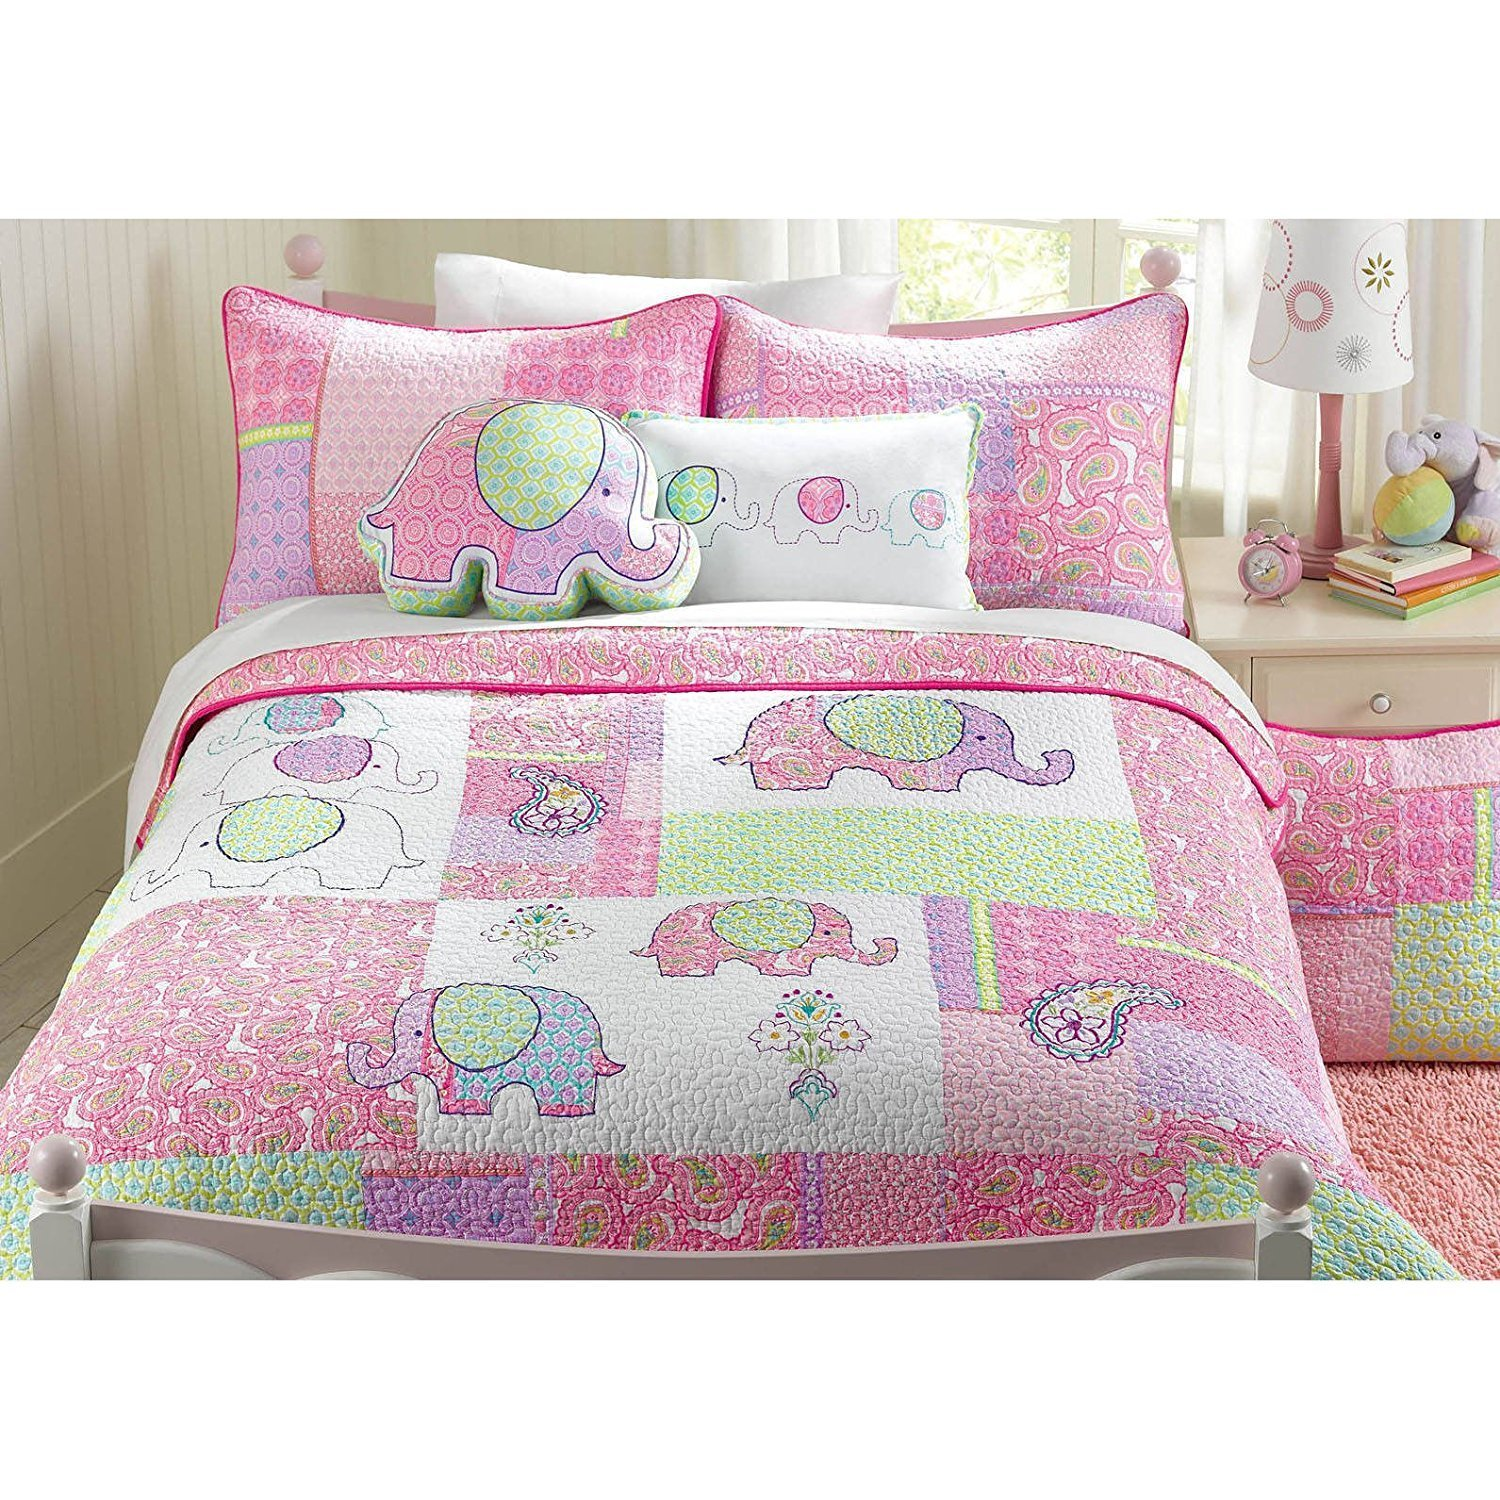 2pc Adorable Purple Green Pink Blue White Twin Quilt Set, Elephant Themed Bedding Colorful Fun Cute Animal Patchwork Girls Kids Flower Floral Paisley Daisy Jungle Pretty, Cotton